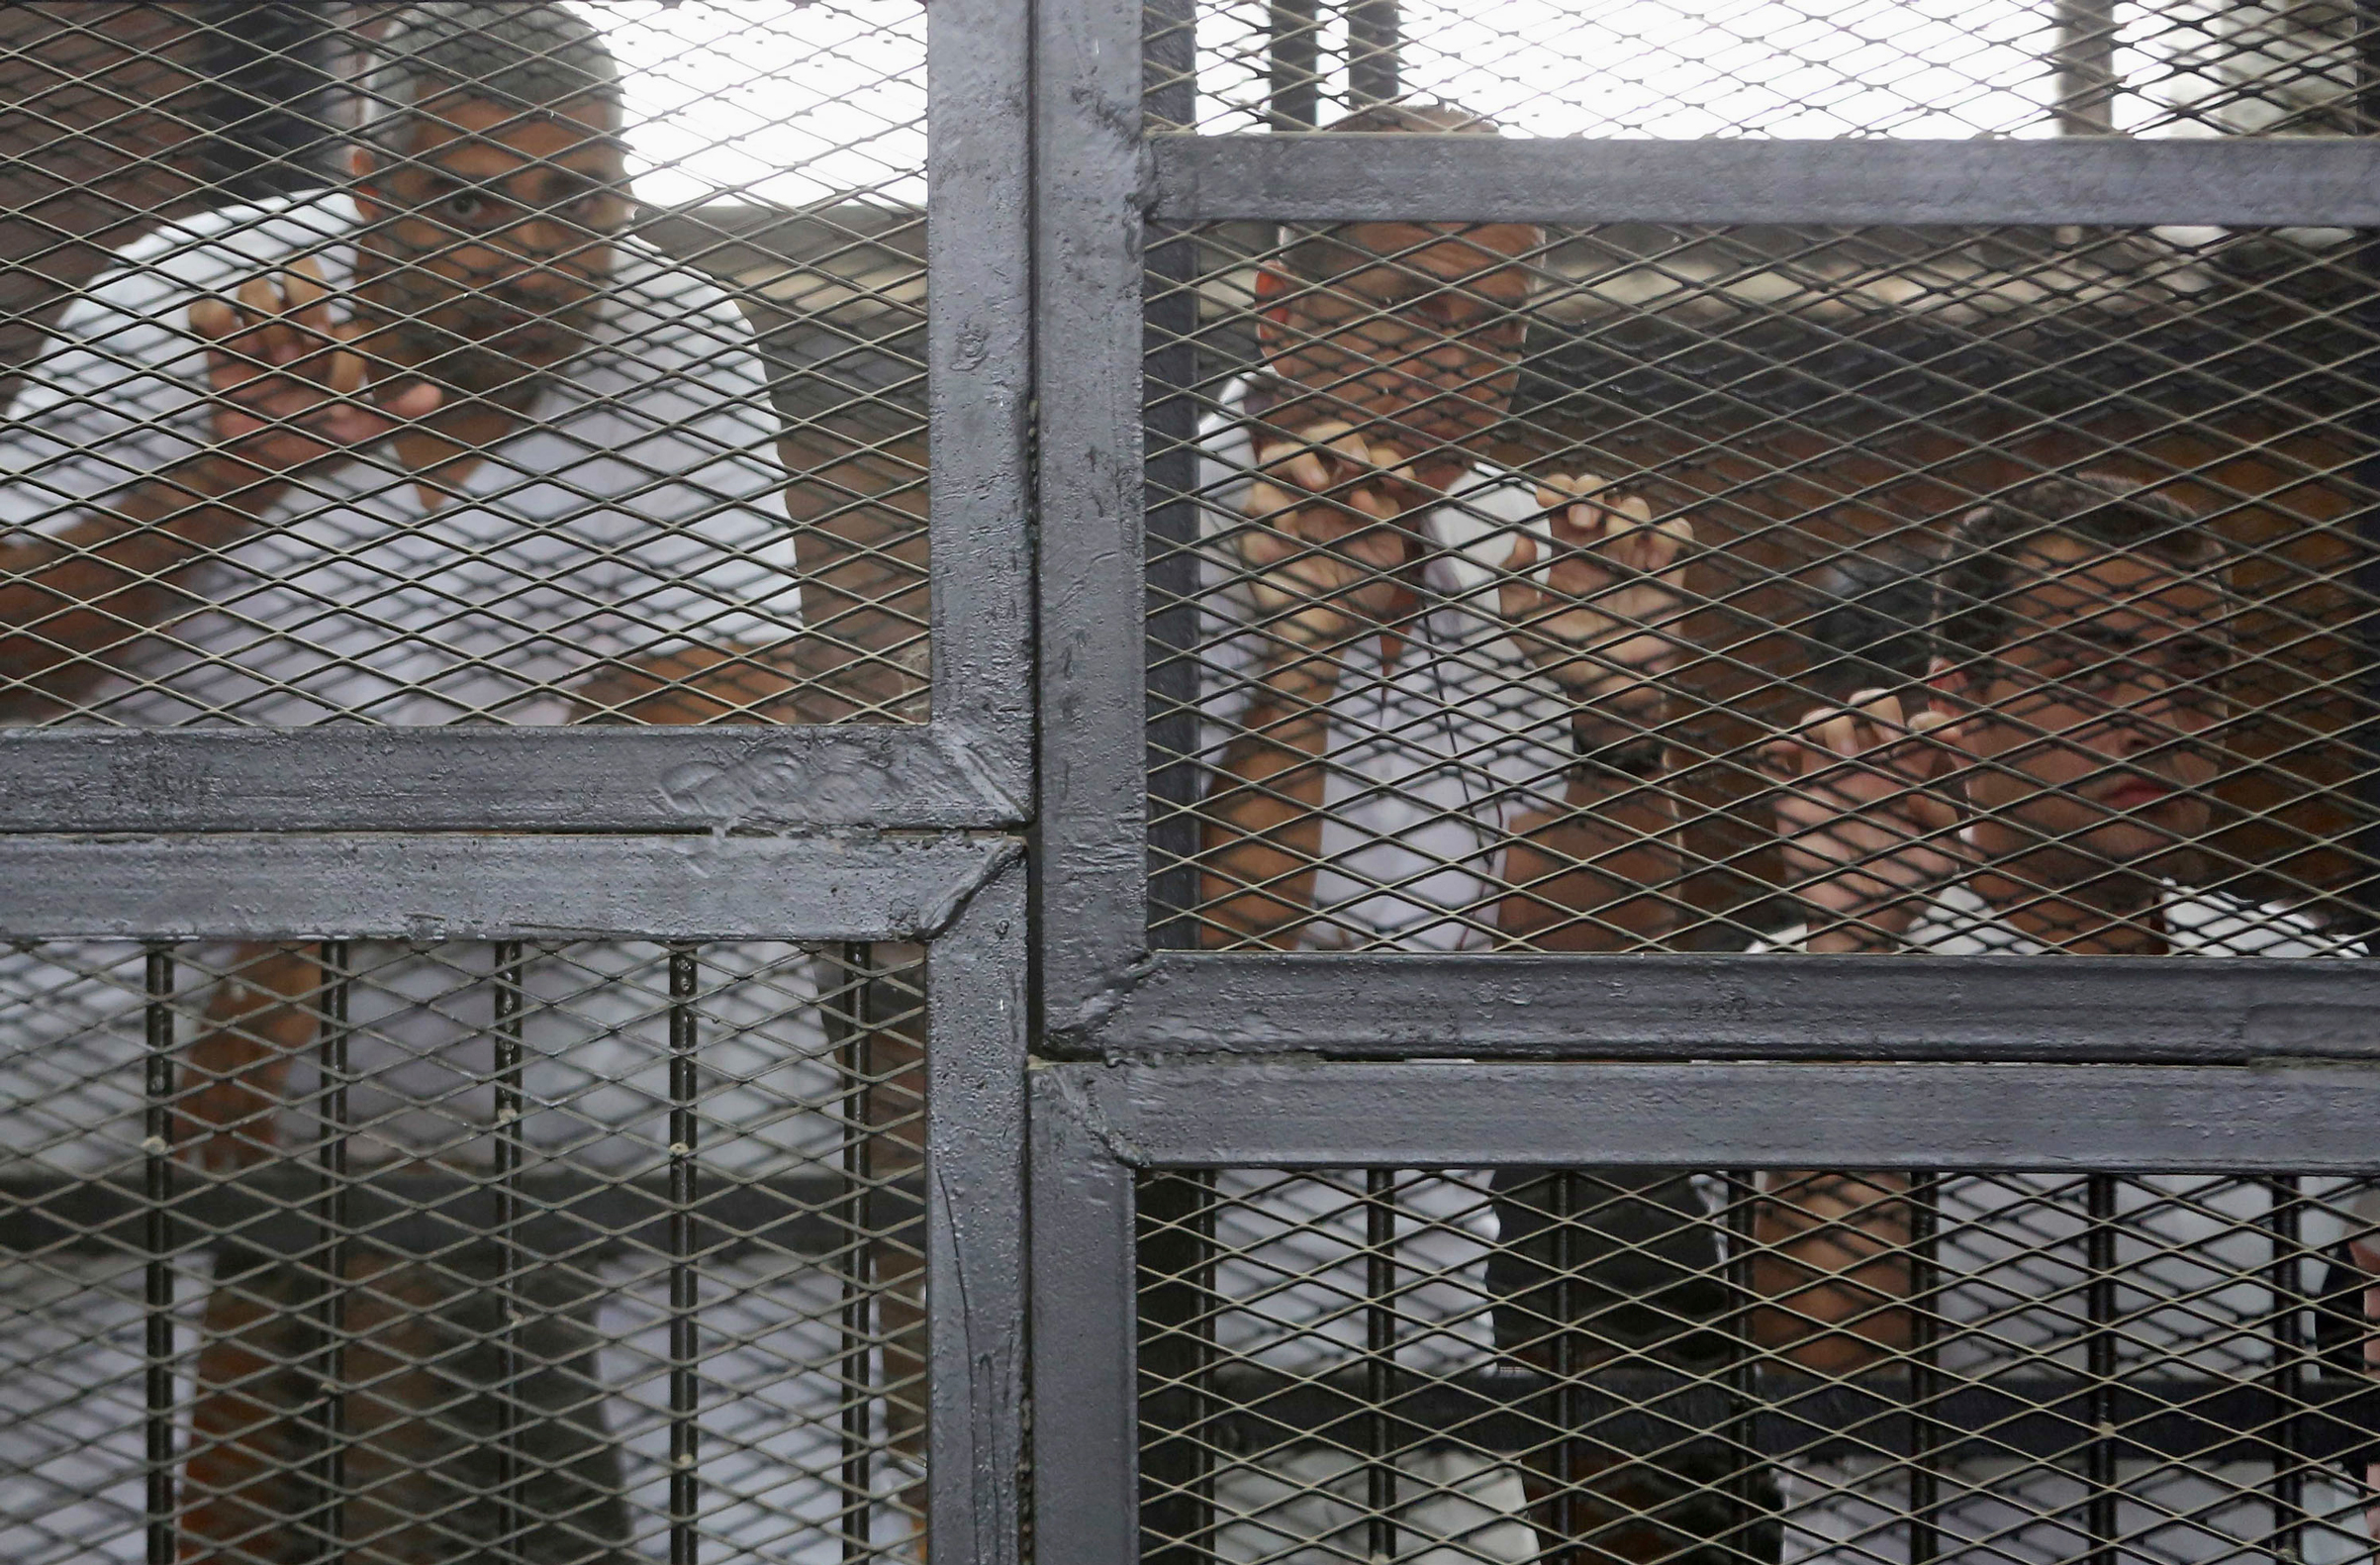 Al Jazeera journalists Mohammed Fahmy, Peter Greste and Baher Mohamed behind bars at a court in Cairo on May 15, 2014.